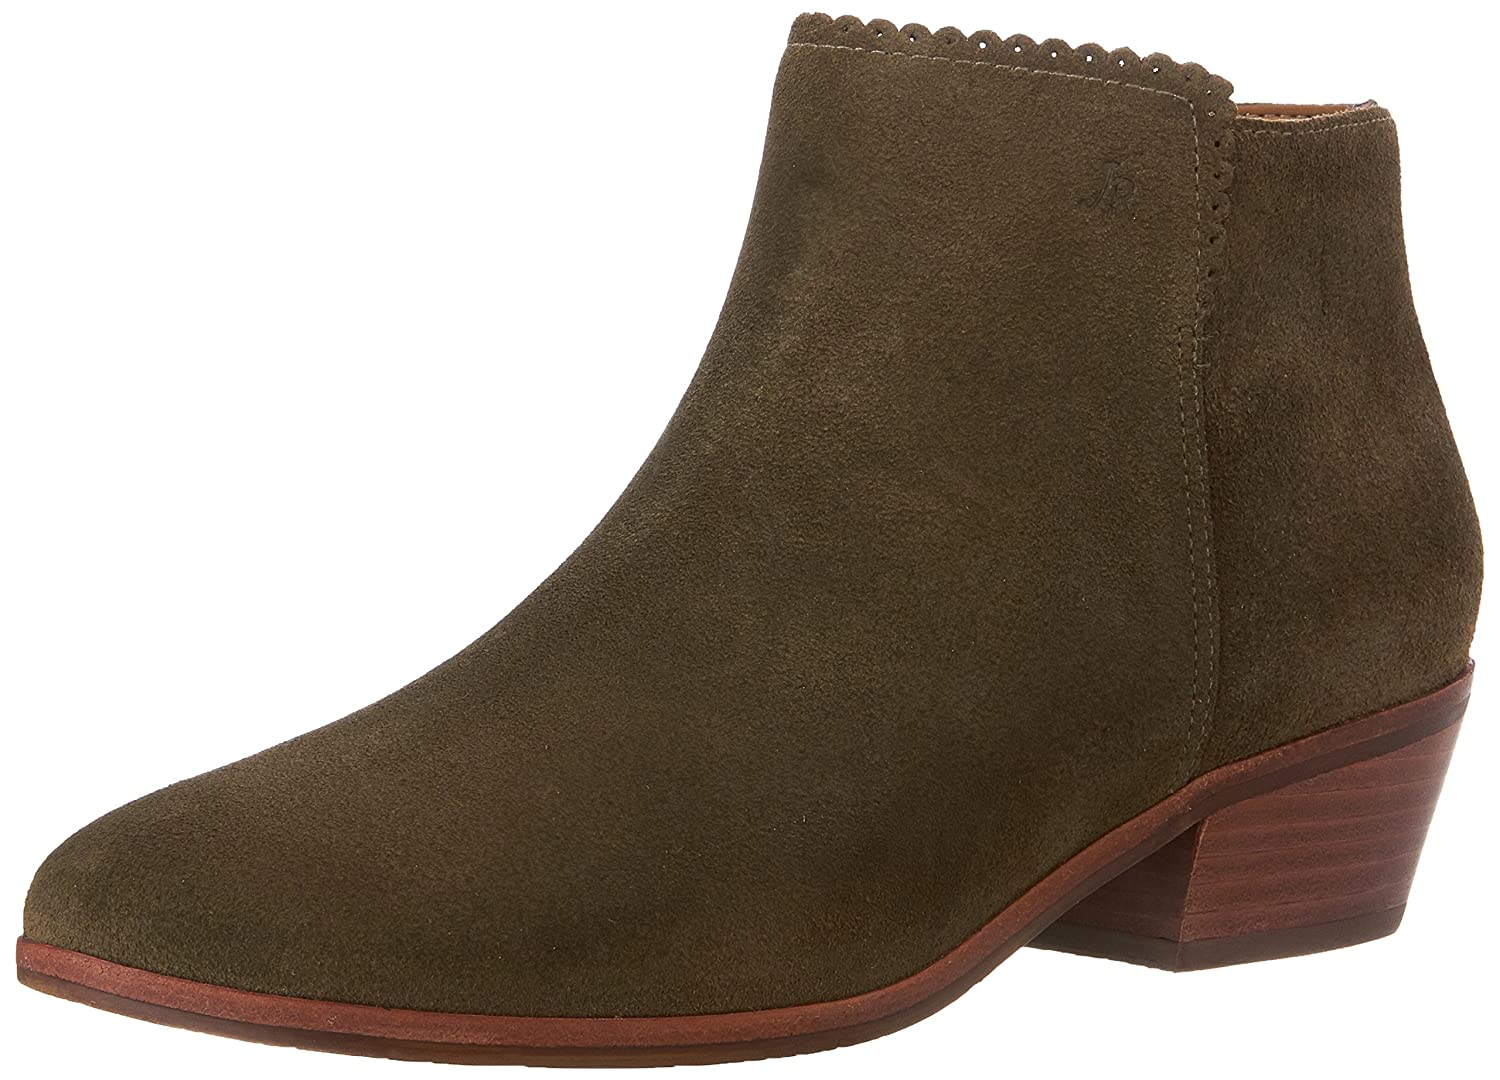 Jack Rogers Women's Bailee Suede Ankle Bootie B00S3Y2IVO 7 B(M) US|Olive